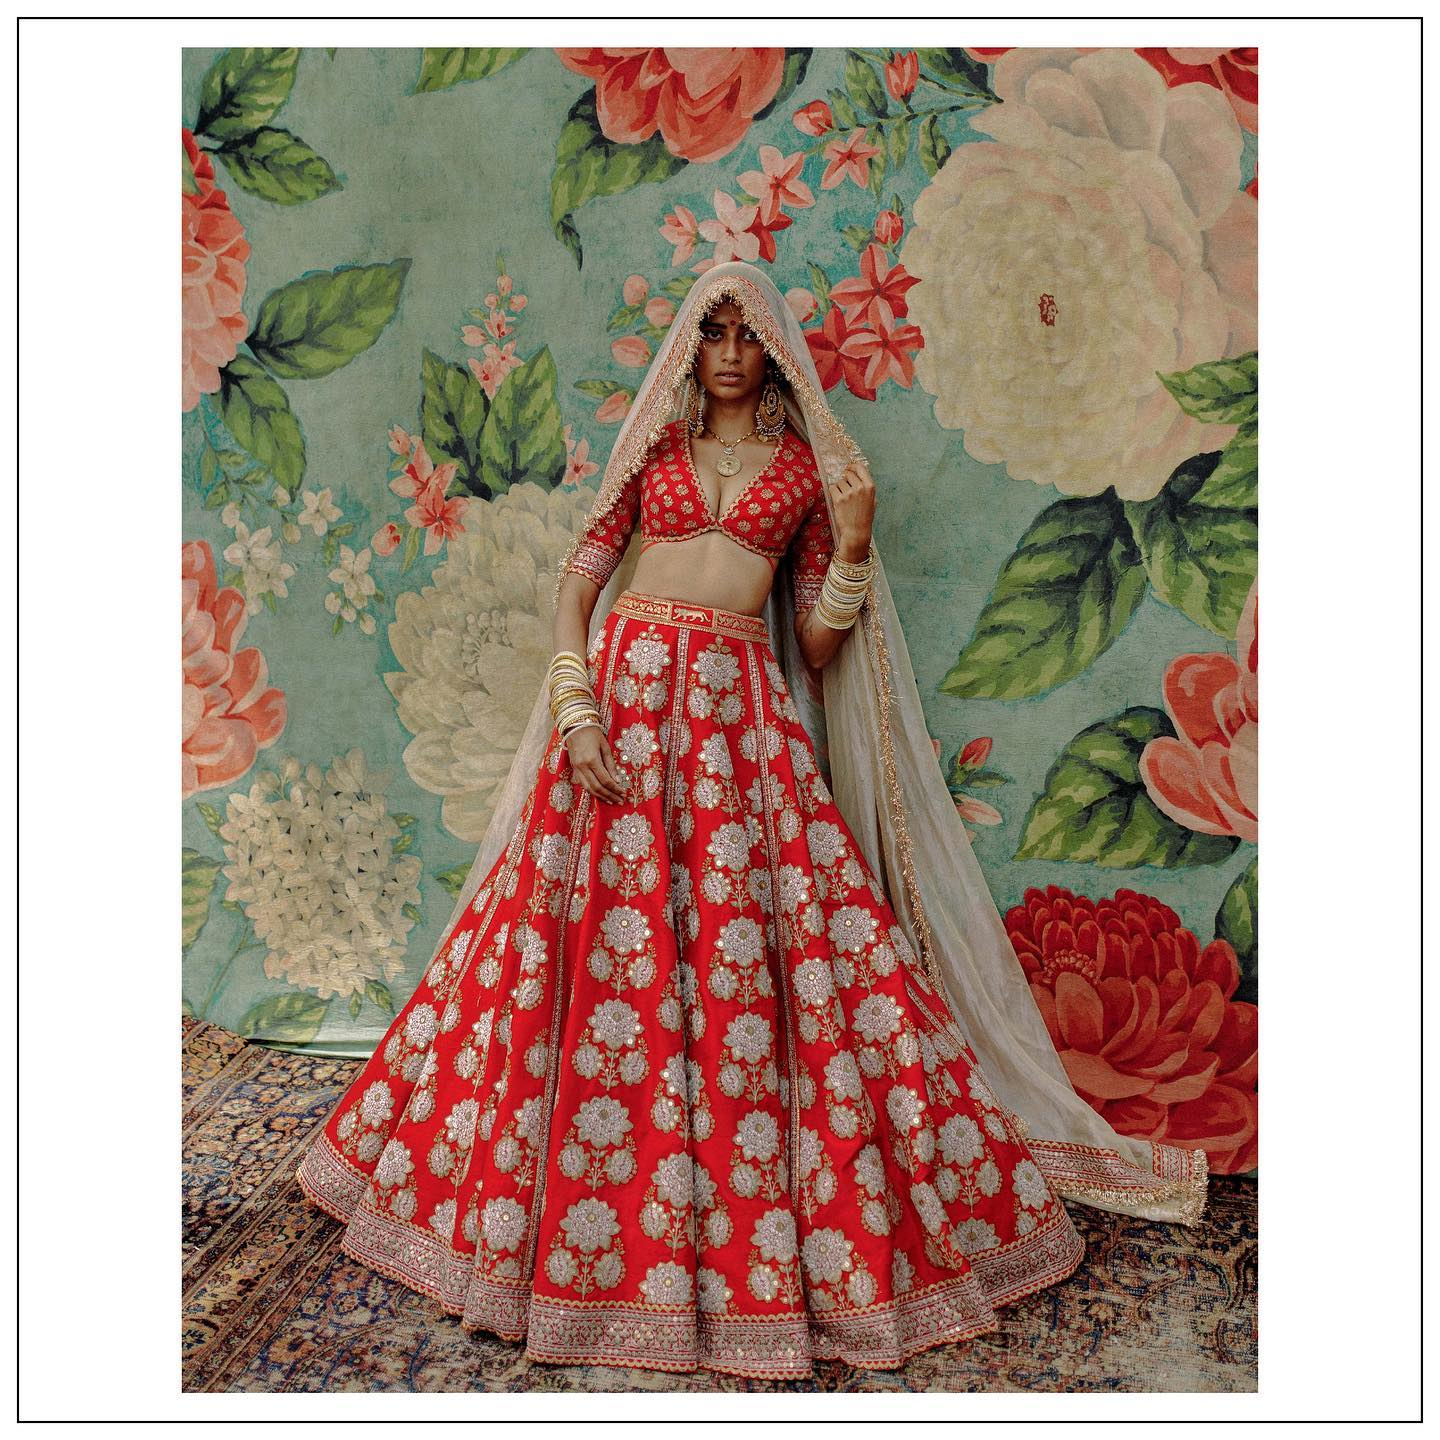 The Sabyasachi 2021 Collection. Stunning red bridal lehenga set.